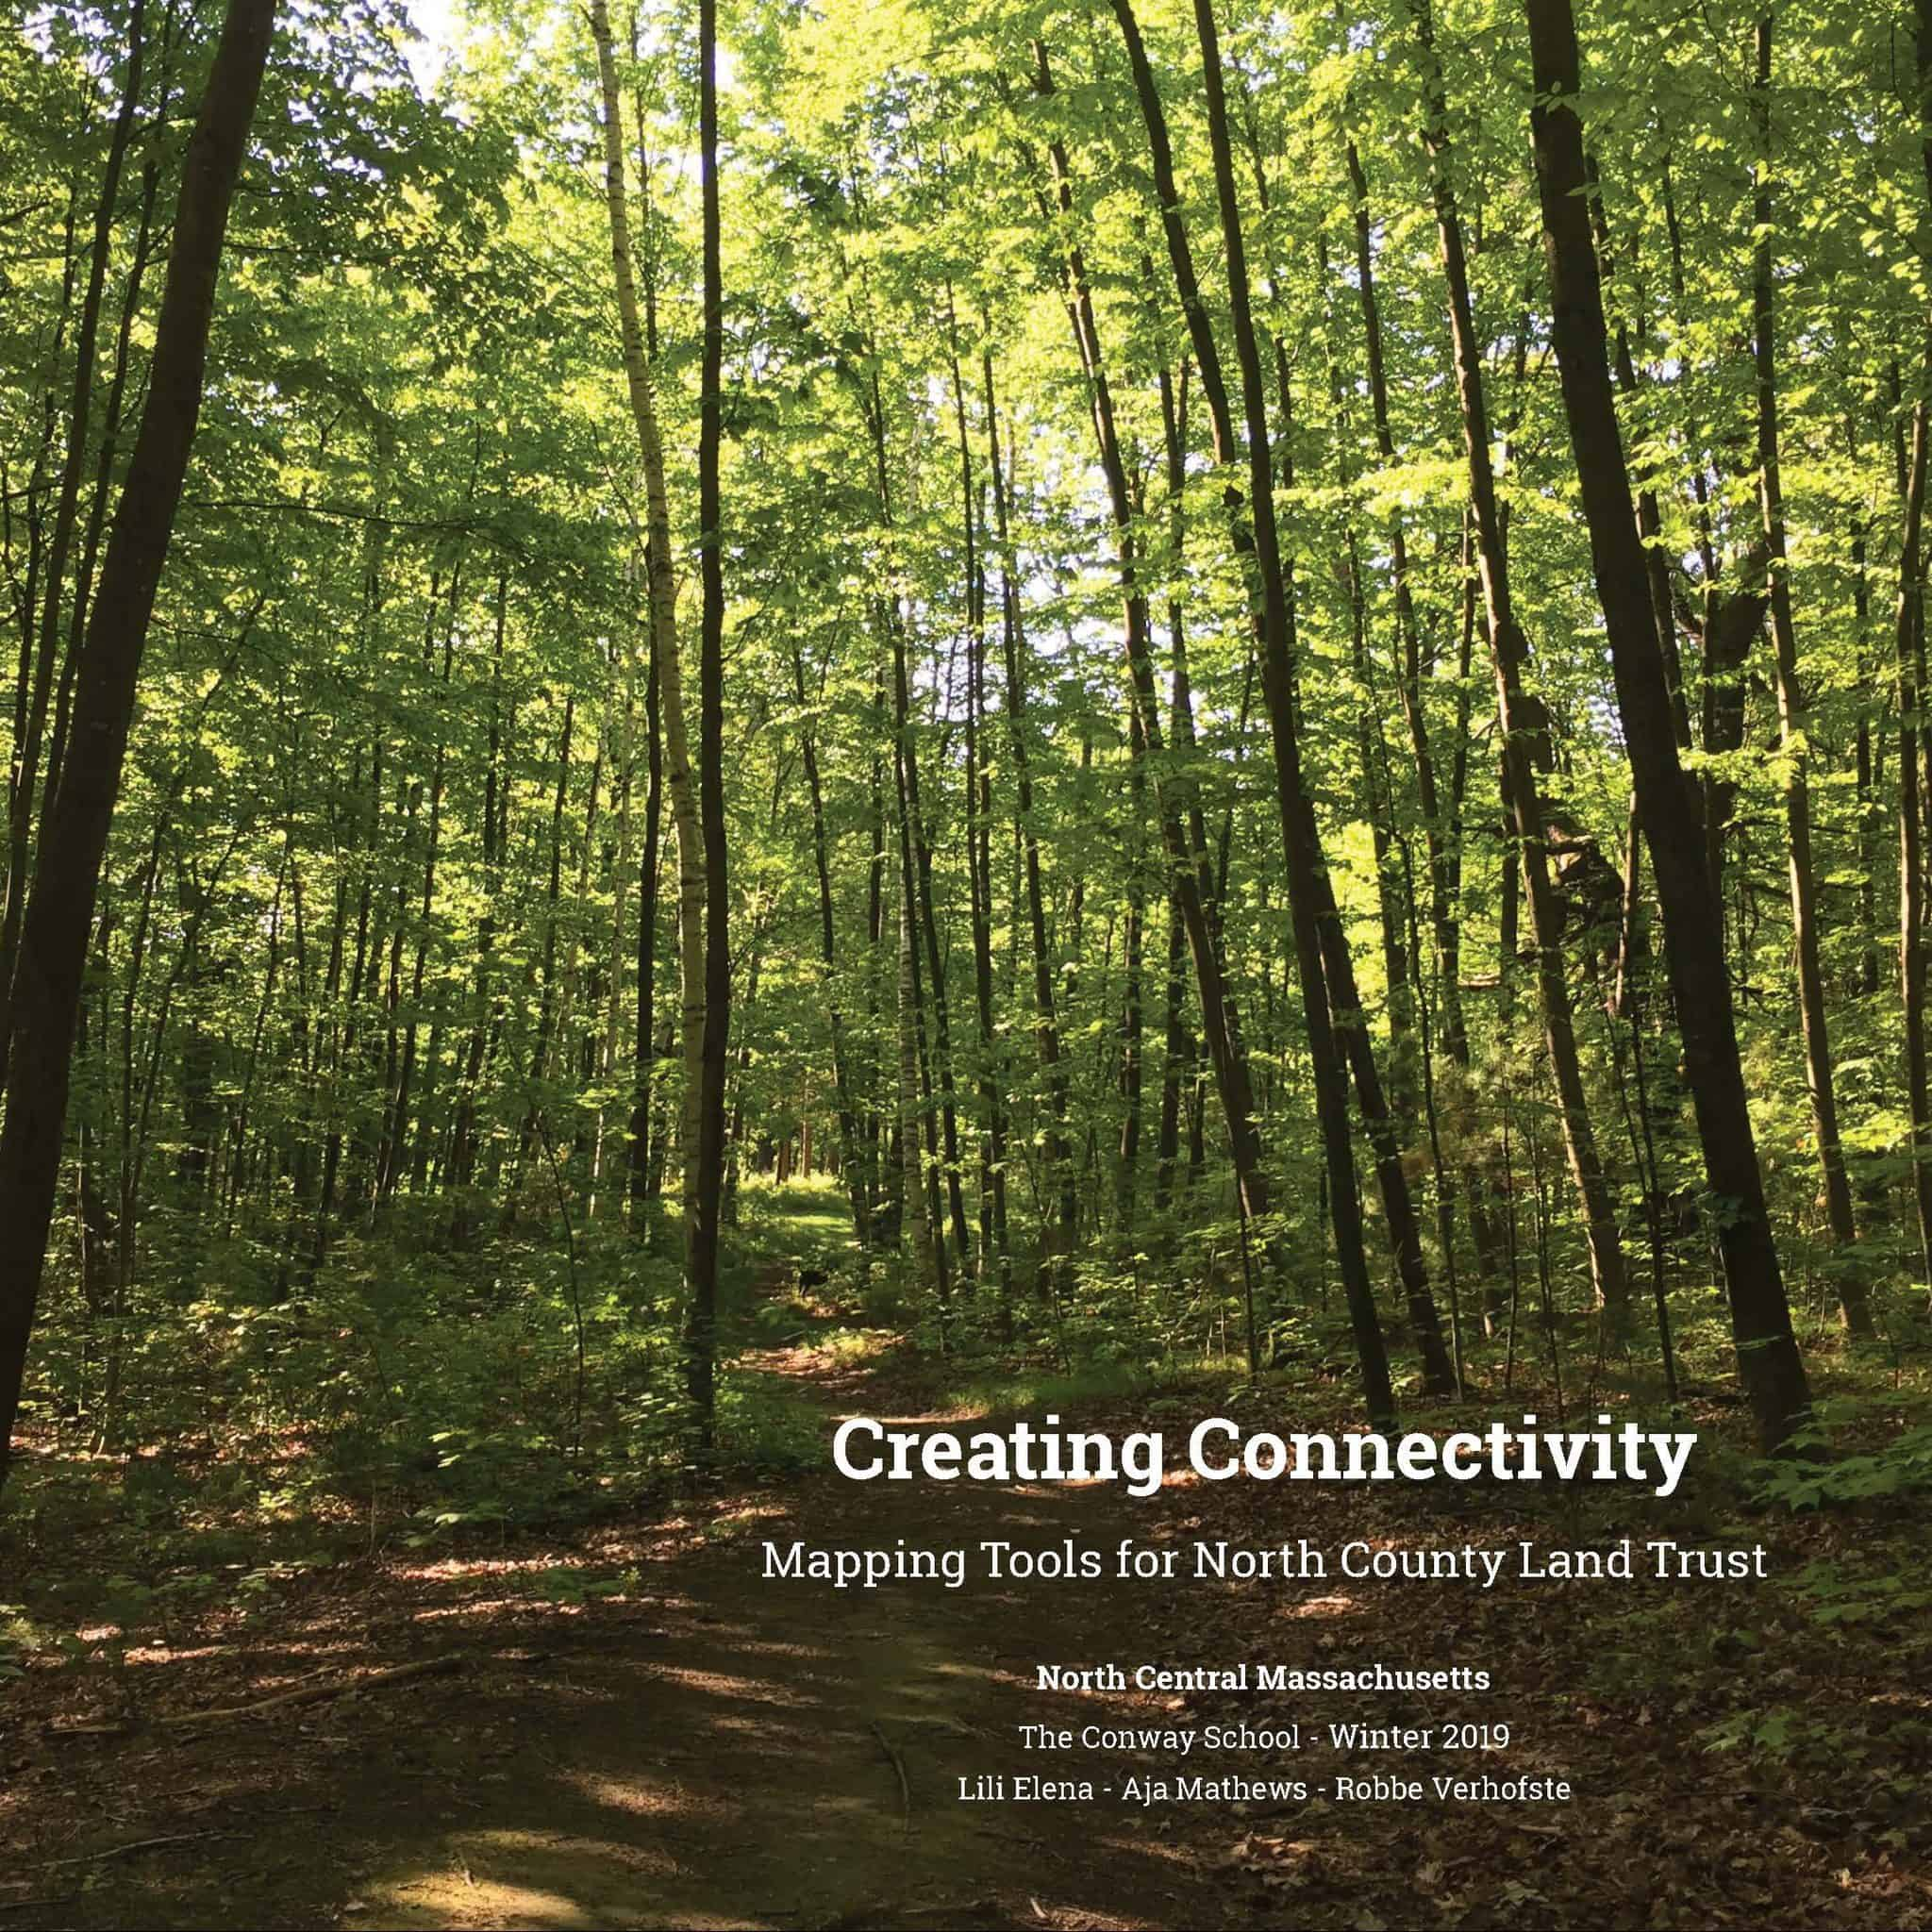 """Cover of the Strategic Conservation Plan showing a trail, tall green trees, and the title """"Creating Connectivity""""."""